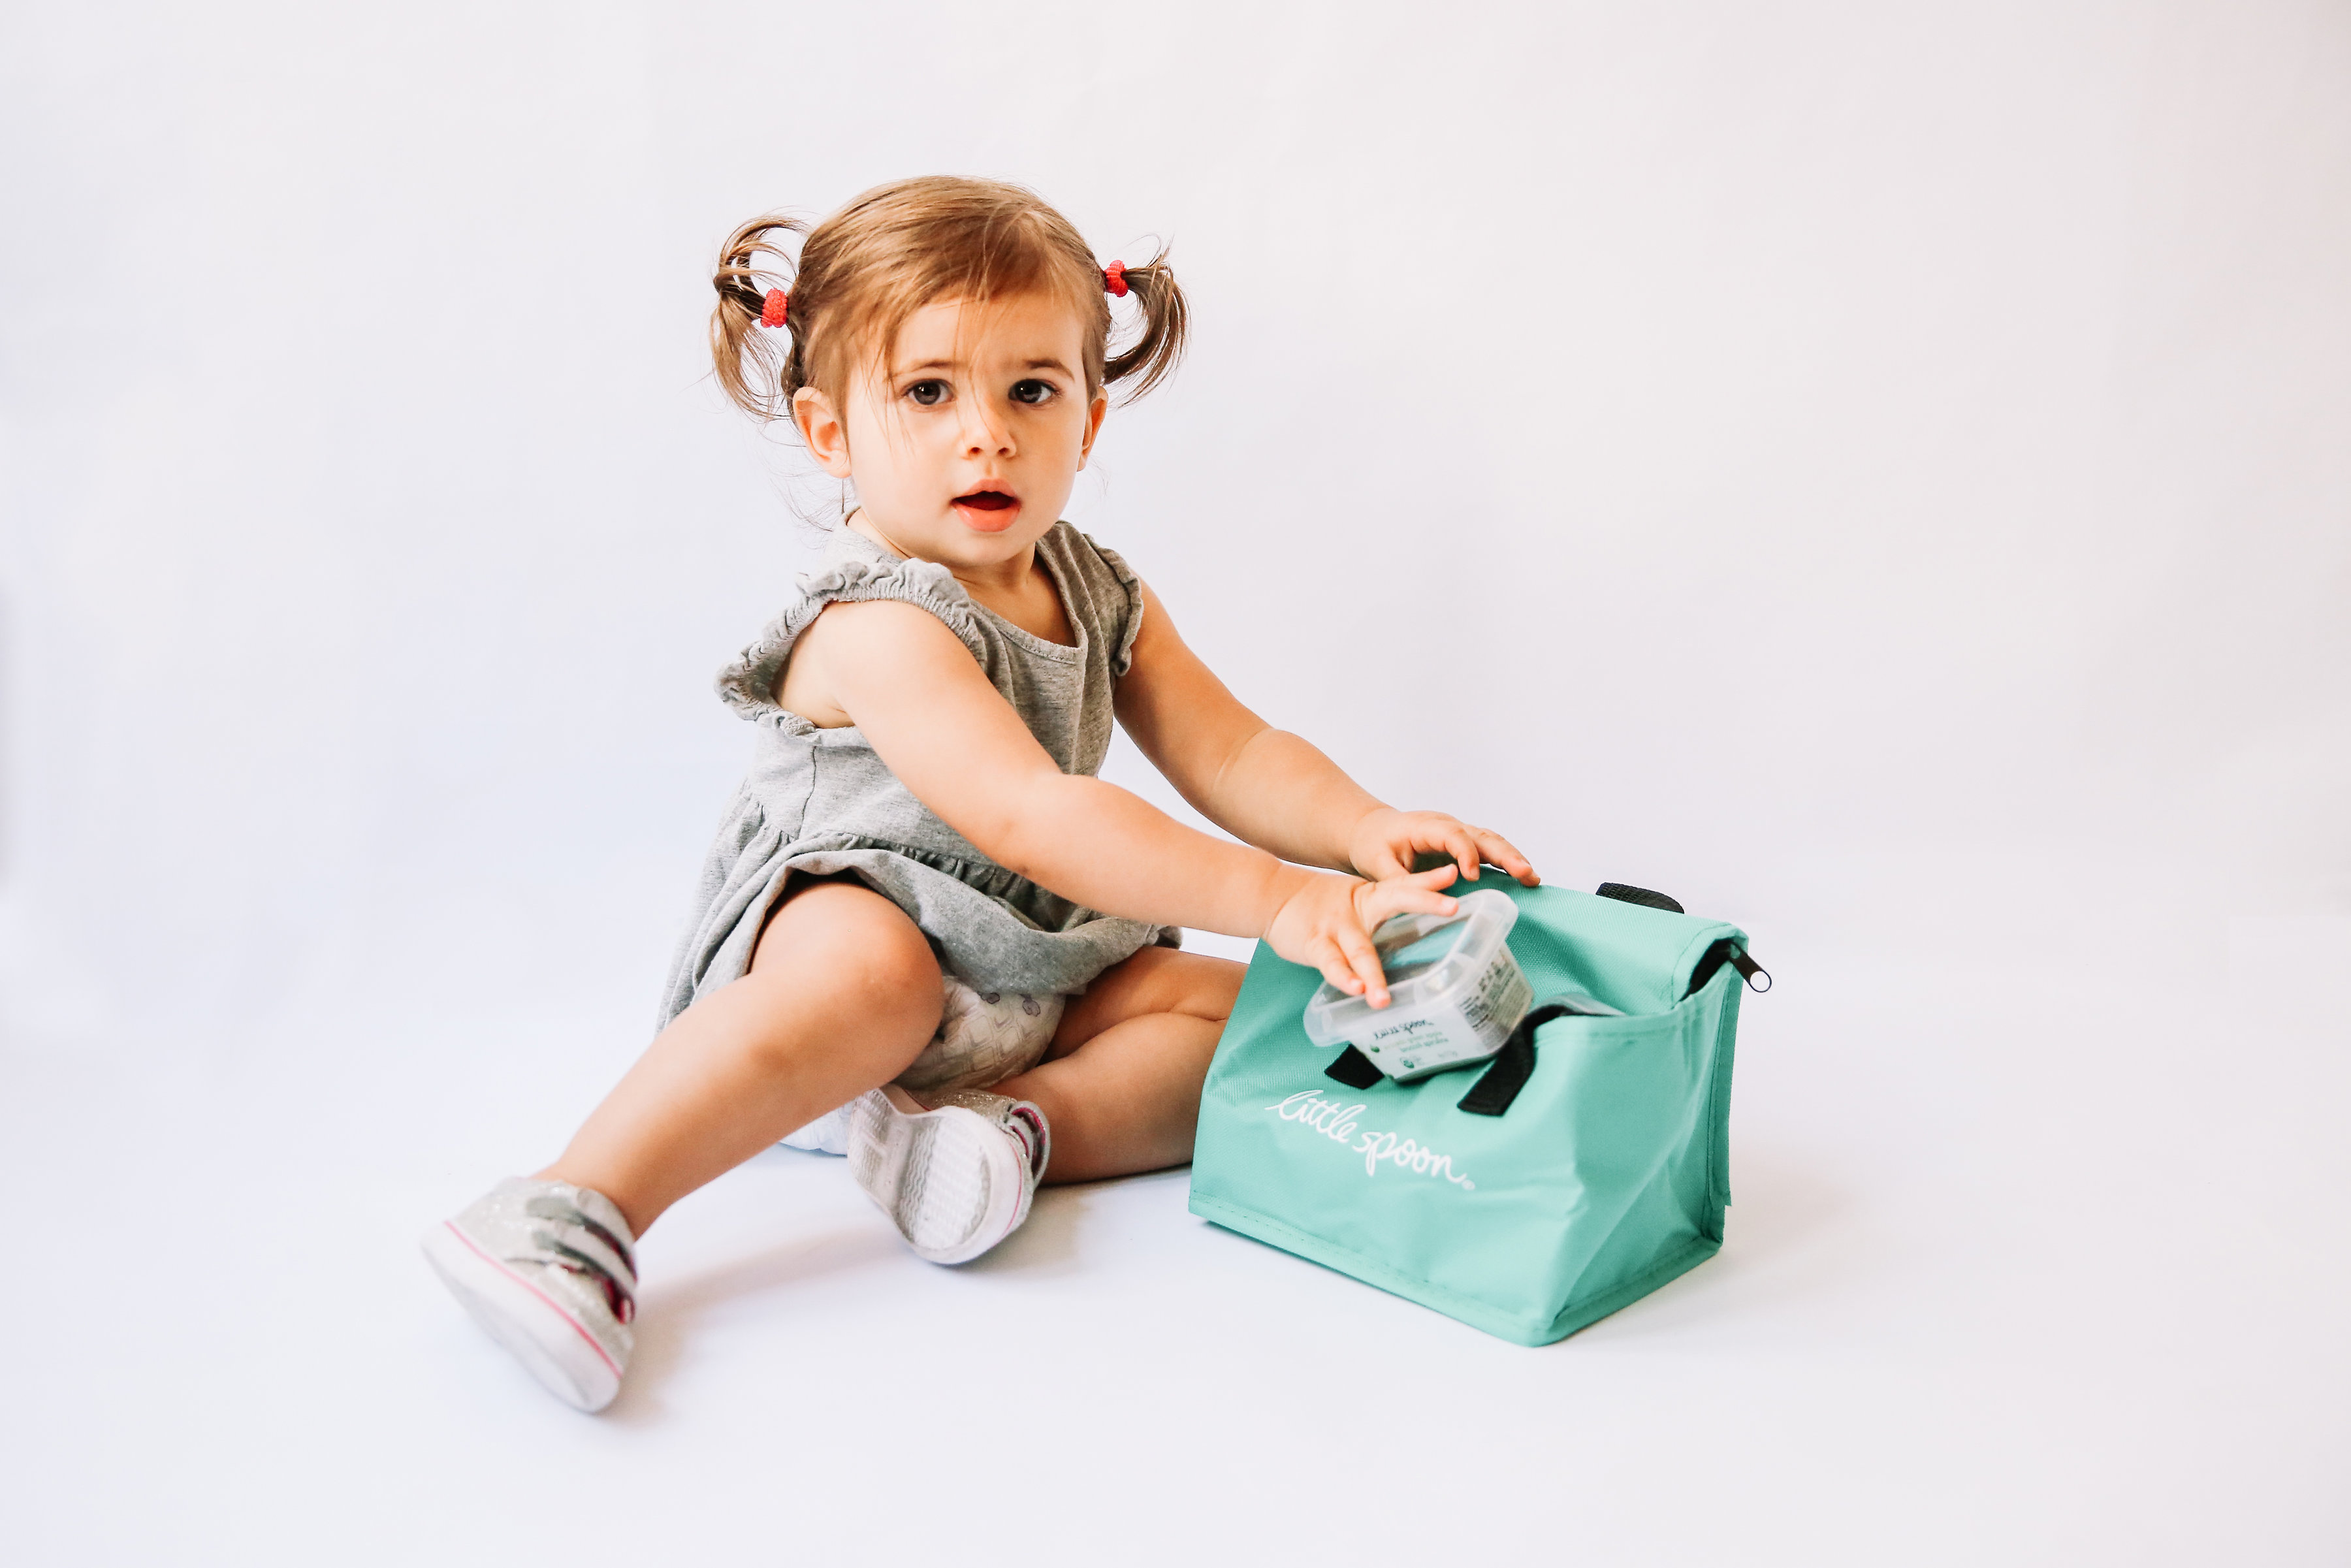 Vaultier7 has invested in the U.S. children's food delivery service Little Spoon